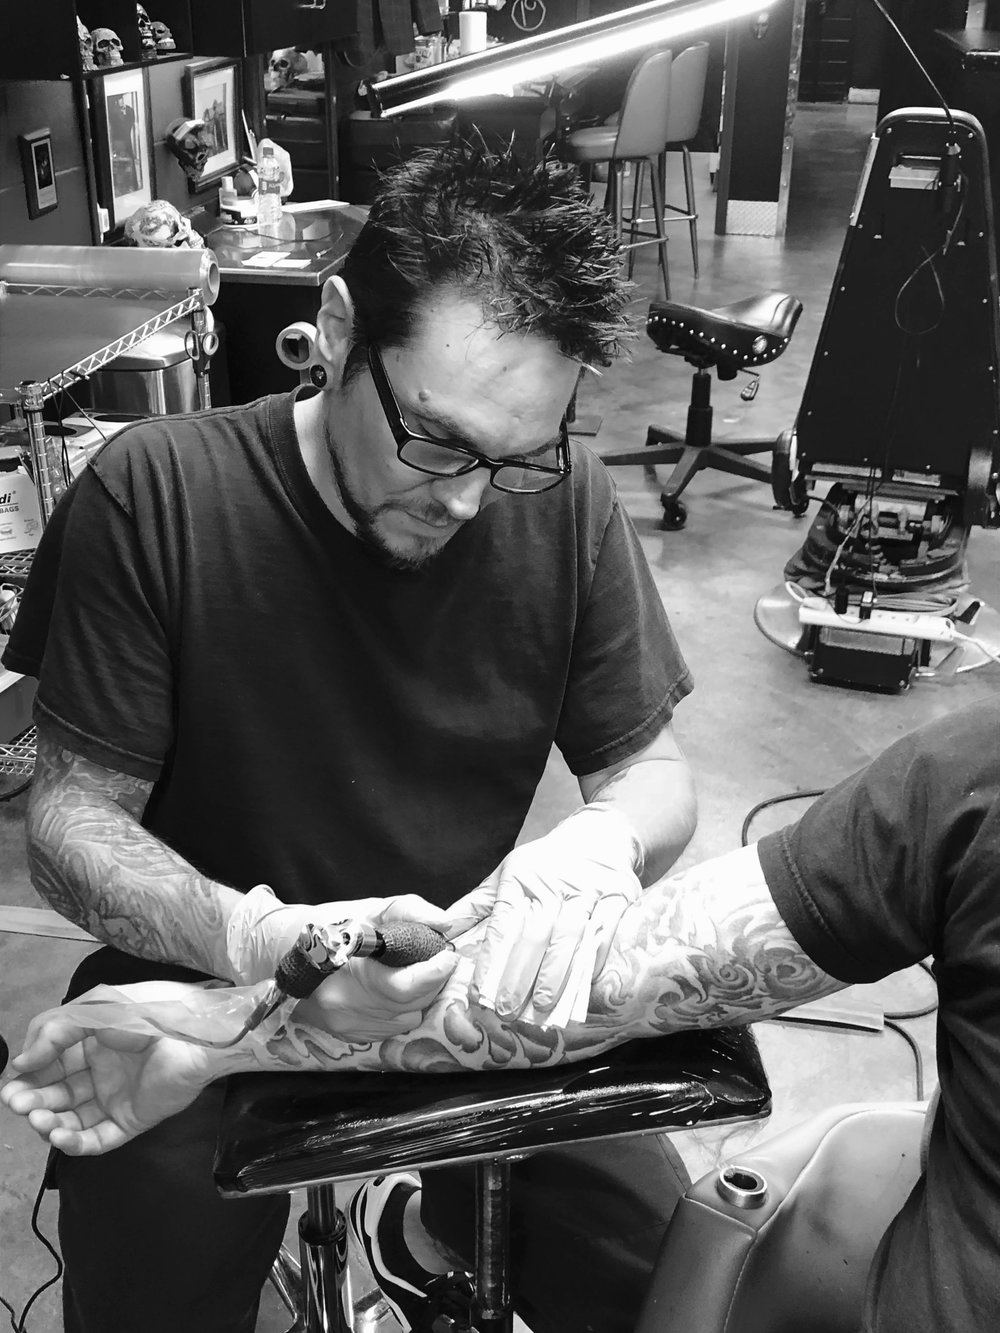 David Sherwood - David specializes in black and gray portraits and macabre style work but is also versatile in many other styles of tattooing. Click on his picture to check out some of his work!